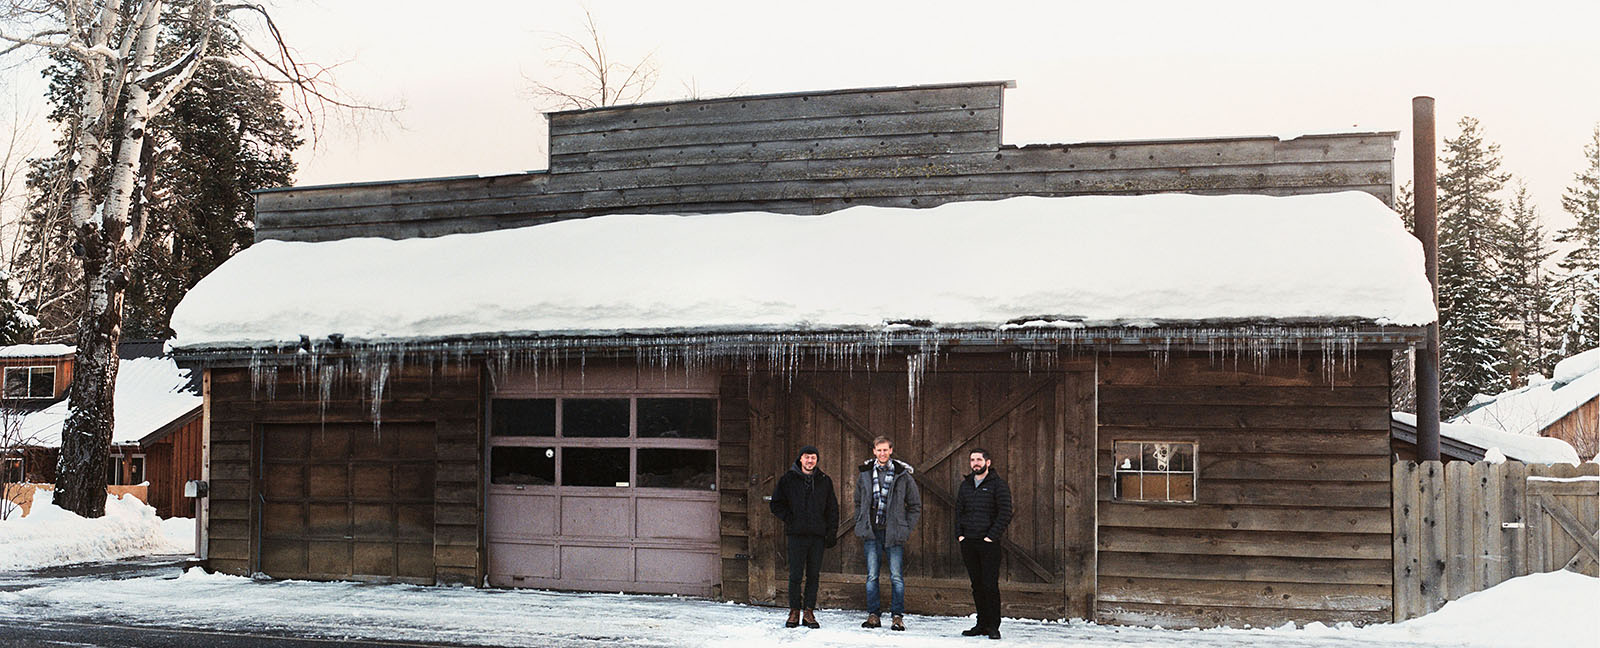 Boys in front of an ice covered barn in Trout Lake, WA | Contax Aria